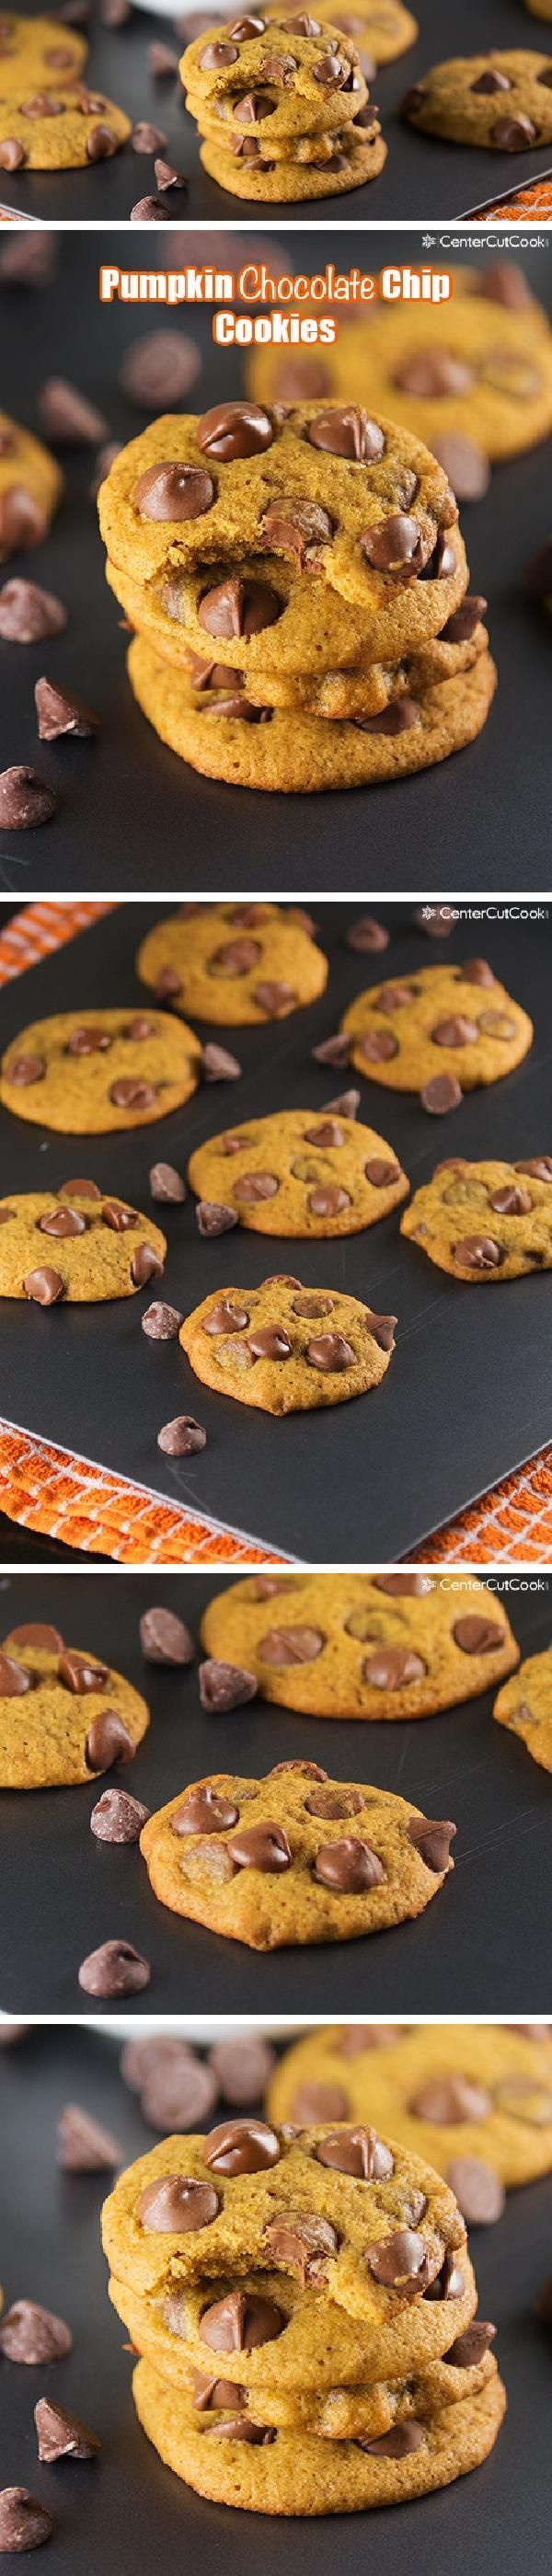 Easy PUMPKIN CHOCOLATE CHIP COOKIES made with Ghirardelli chocolate chips! Super soft cookies with hints of pumpkin and cinnamon. Delicious as is, or top them with a little cream cheese frosting!